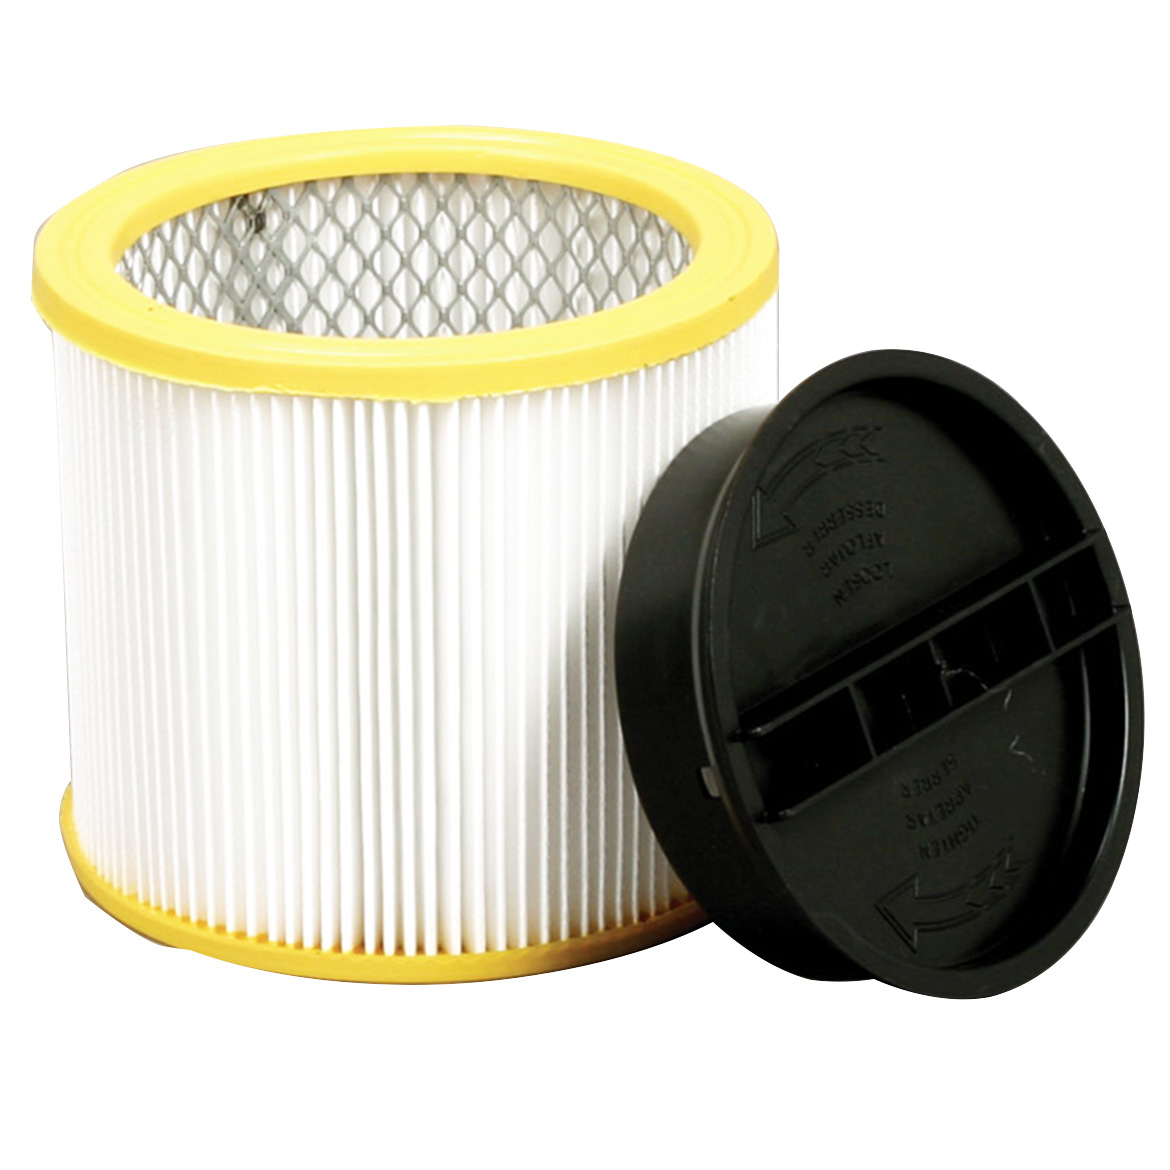 Shop-Vac 9038010 Cleanstream Abrasive and Clogging Resistant Cartridge Filter